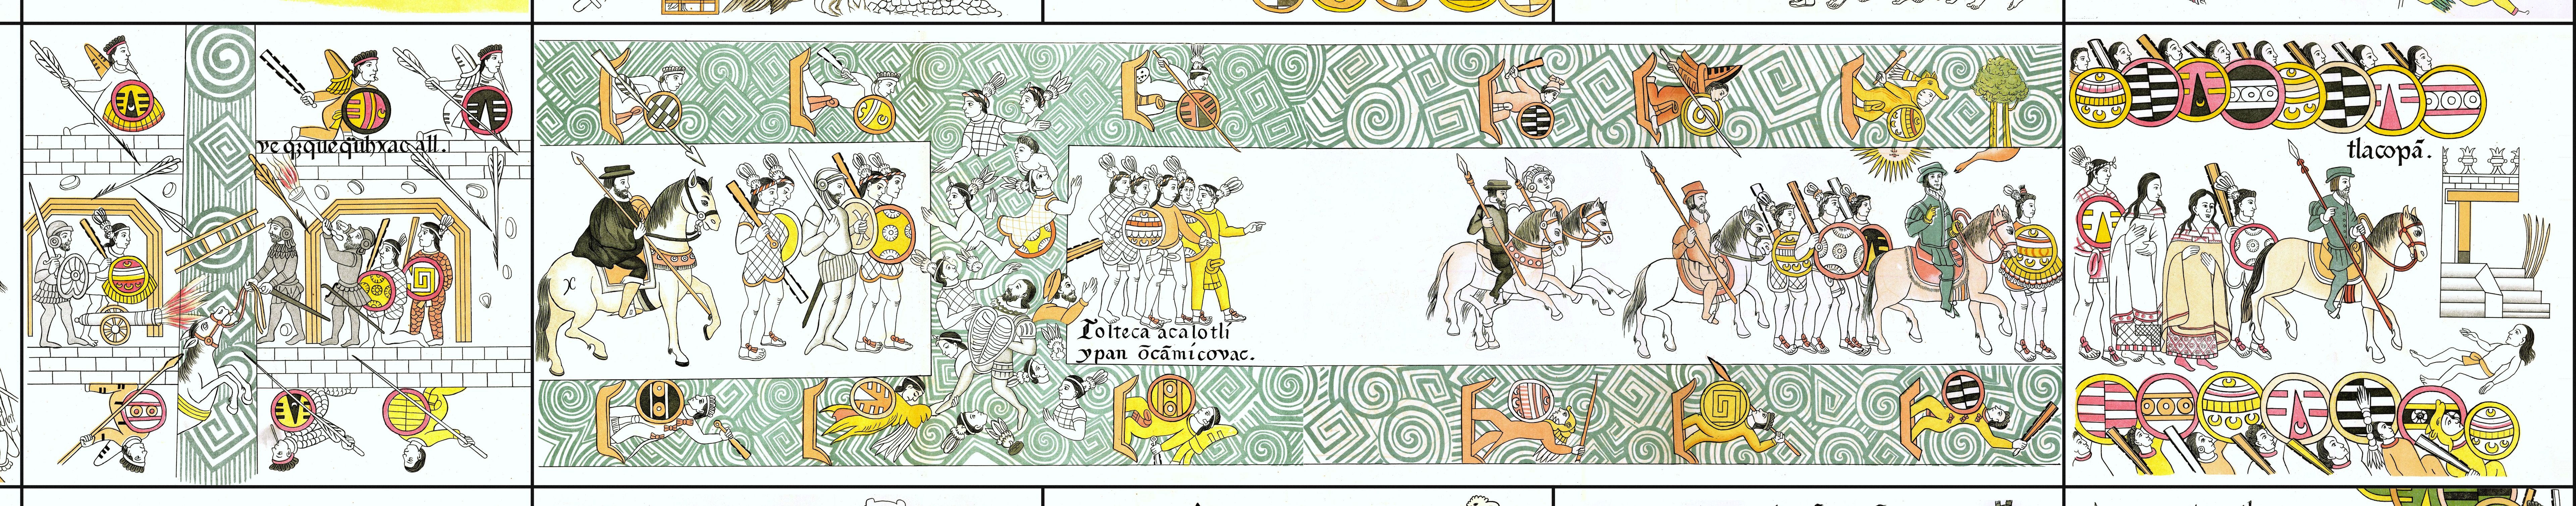 FIGURE 20. Cells 17 to 19: The flight from Tenochtitlan on the Noche Triste.